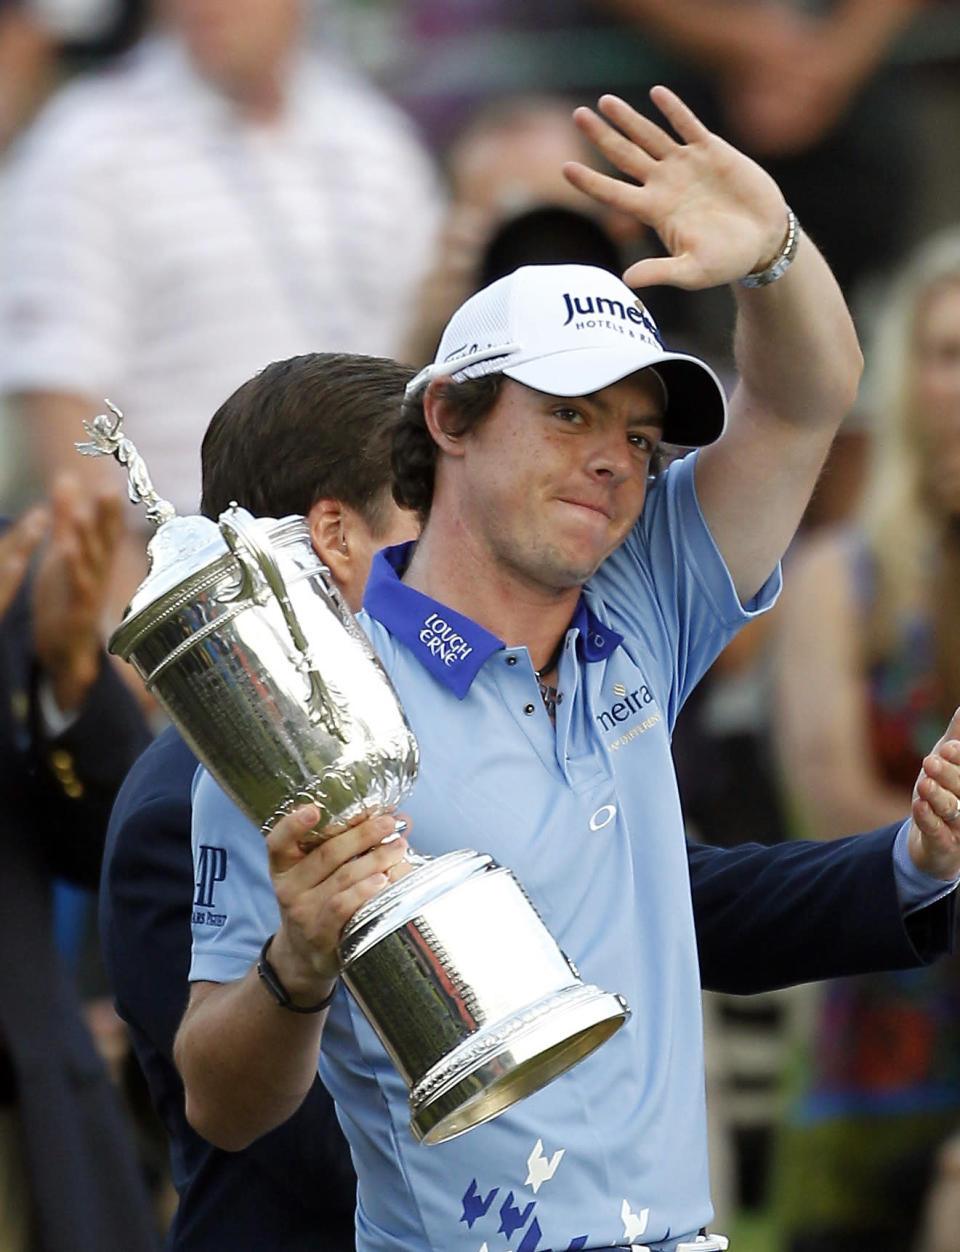 FILE - In this June 19, 2011, file photo, Rory McIlroy, of Northern Ireland, acknowledges the gallery as he holds the trophy on the 18th green after winning the U.S. Open Championship golf tournament in Bethesda, Md. Ten years ago, McIlroy won the first of his four majors. (AP Photo/Eric Gay, File)